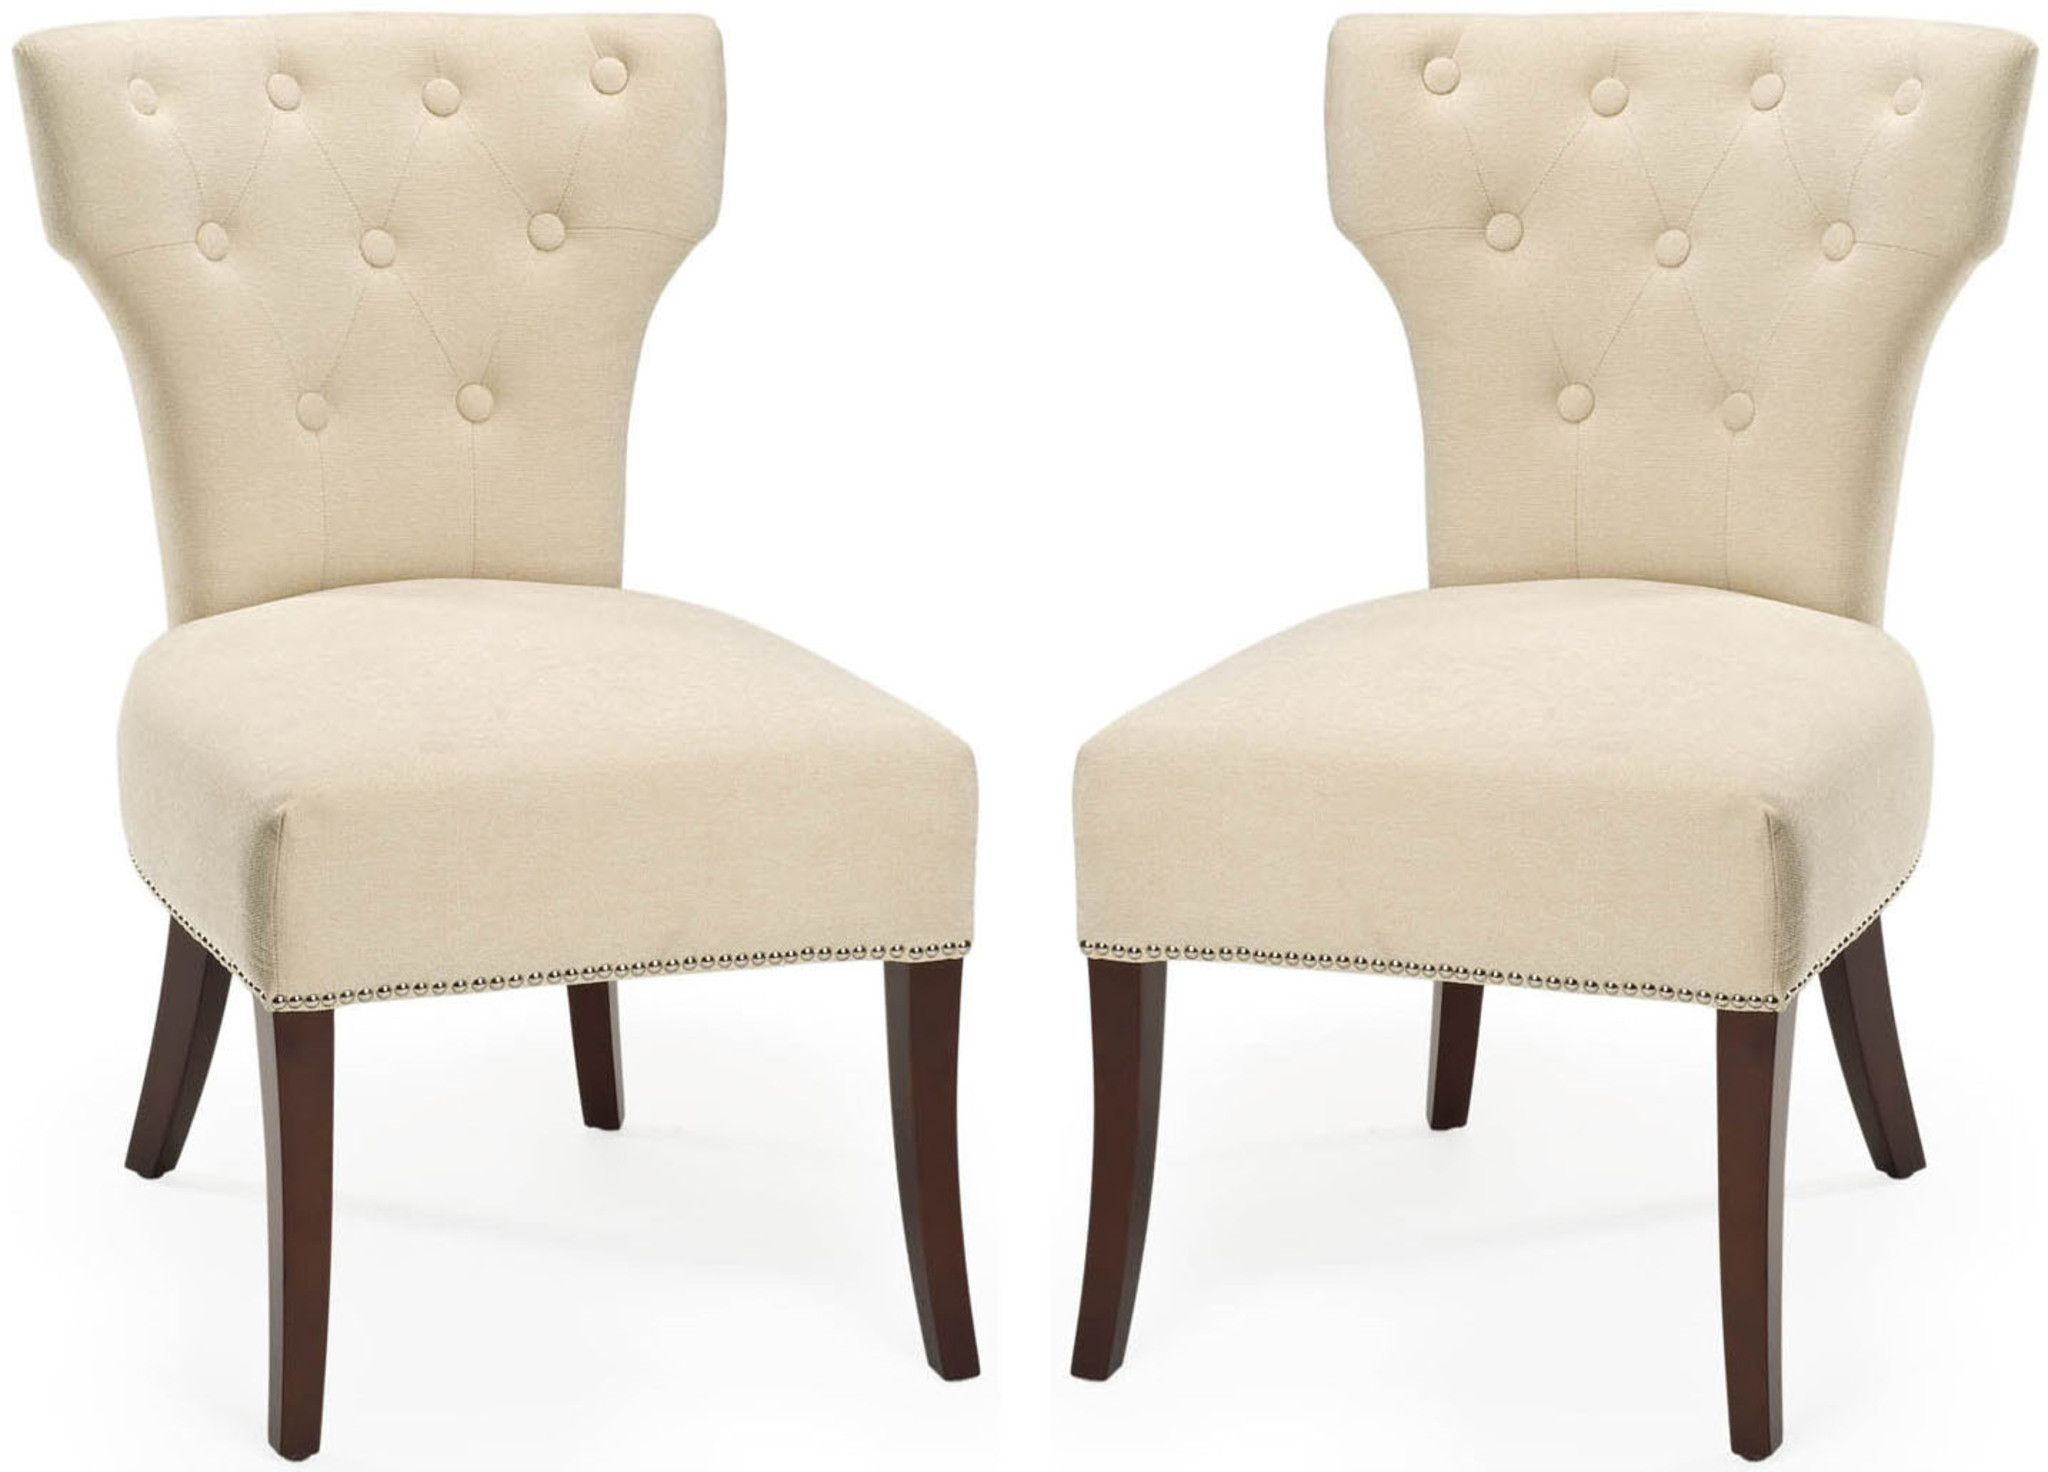 Safavieh Broome Tufted Side Chair W Nickel Nail Heads Set Of 2